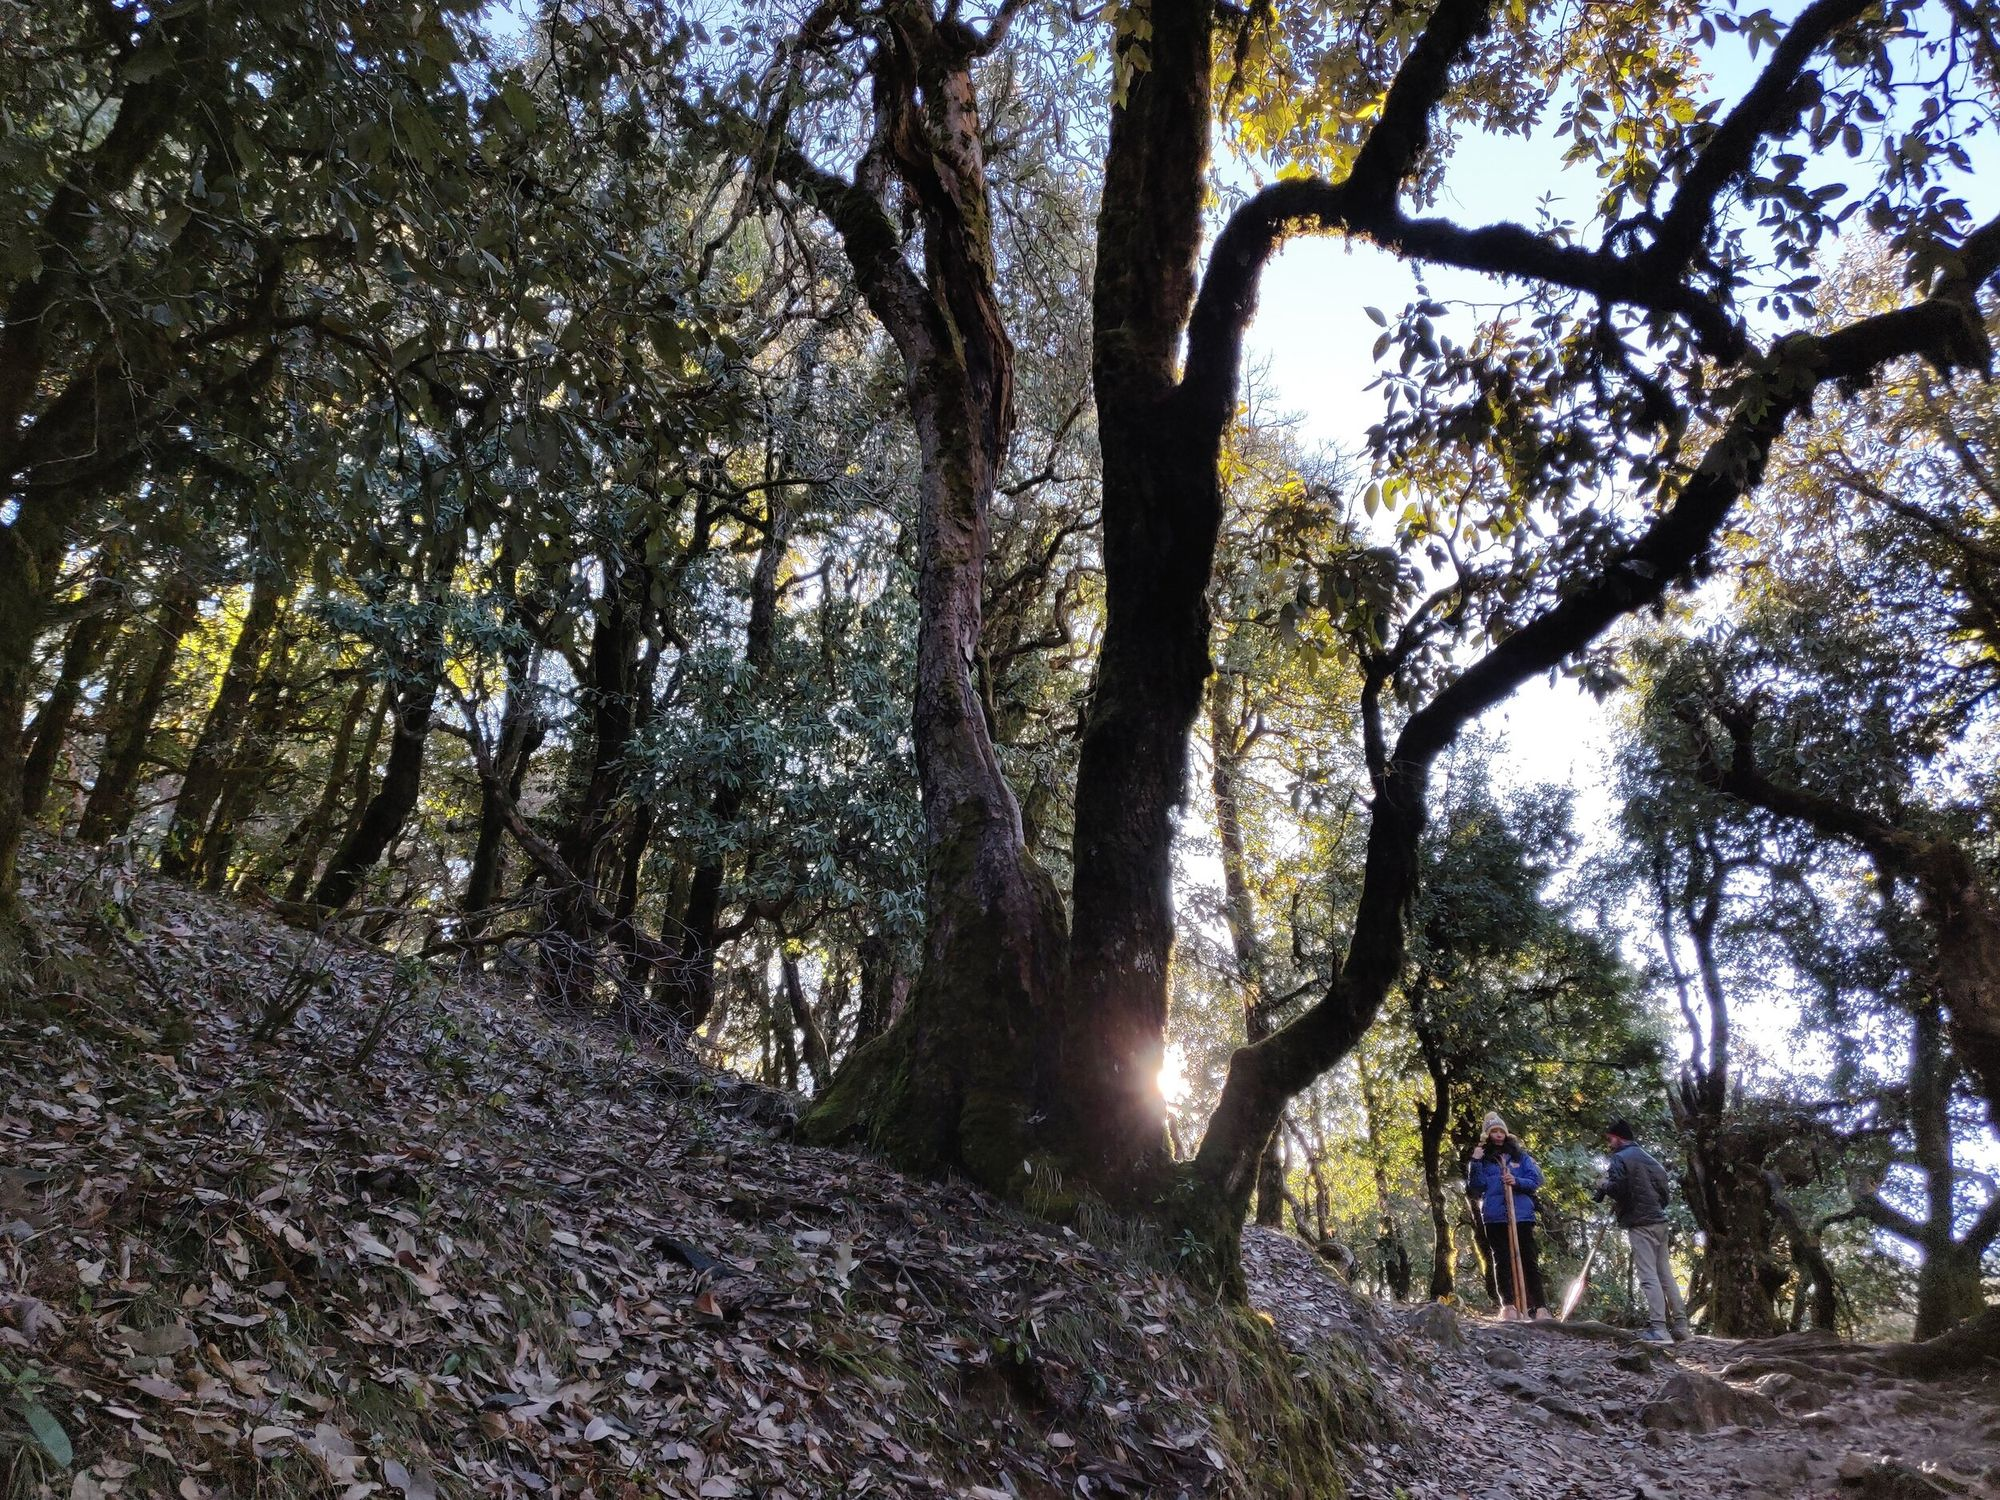 Sunlight filtering through dense forest and its warmth spreading on our face was the most enchanting experience of the entire trek